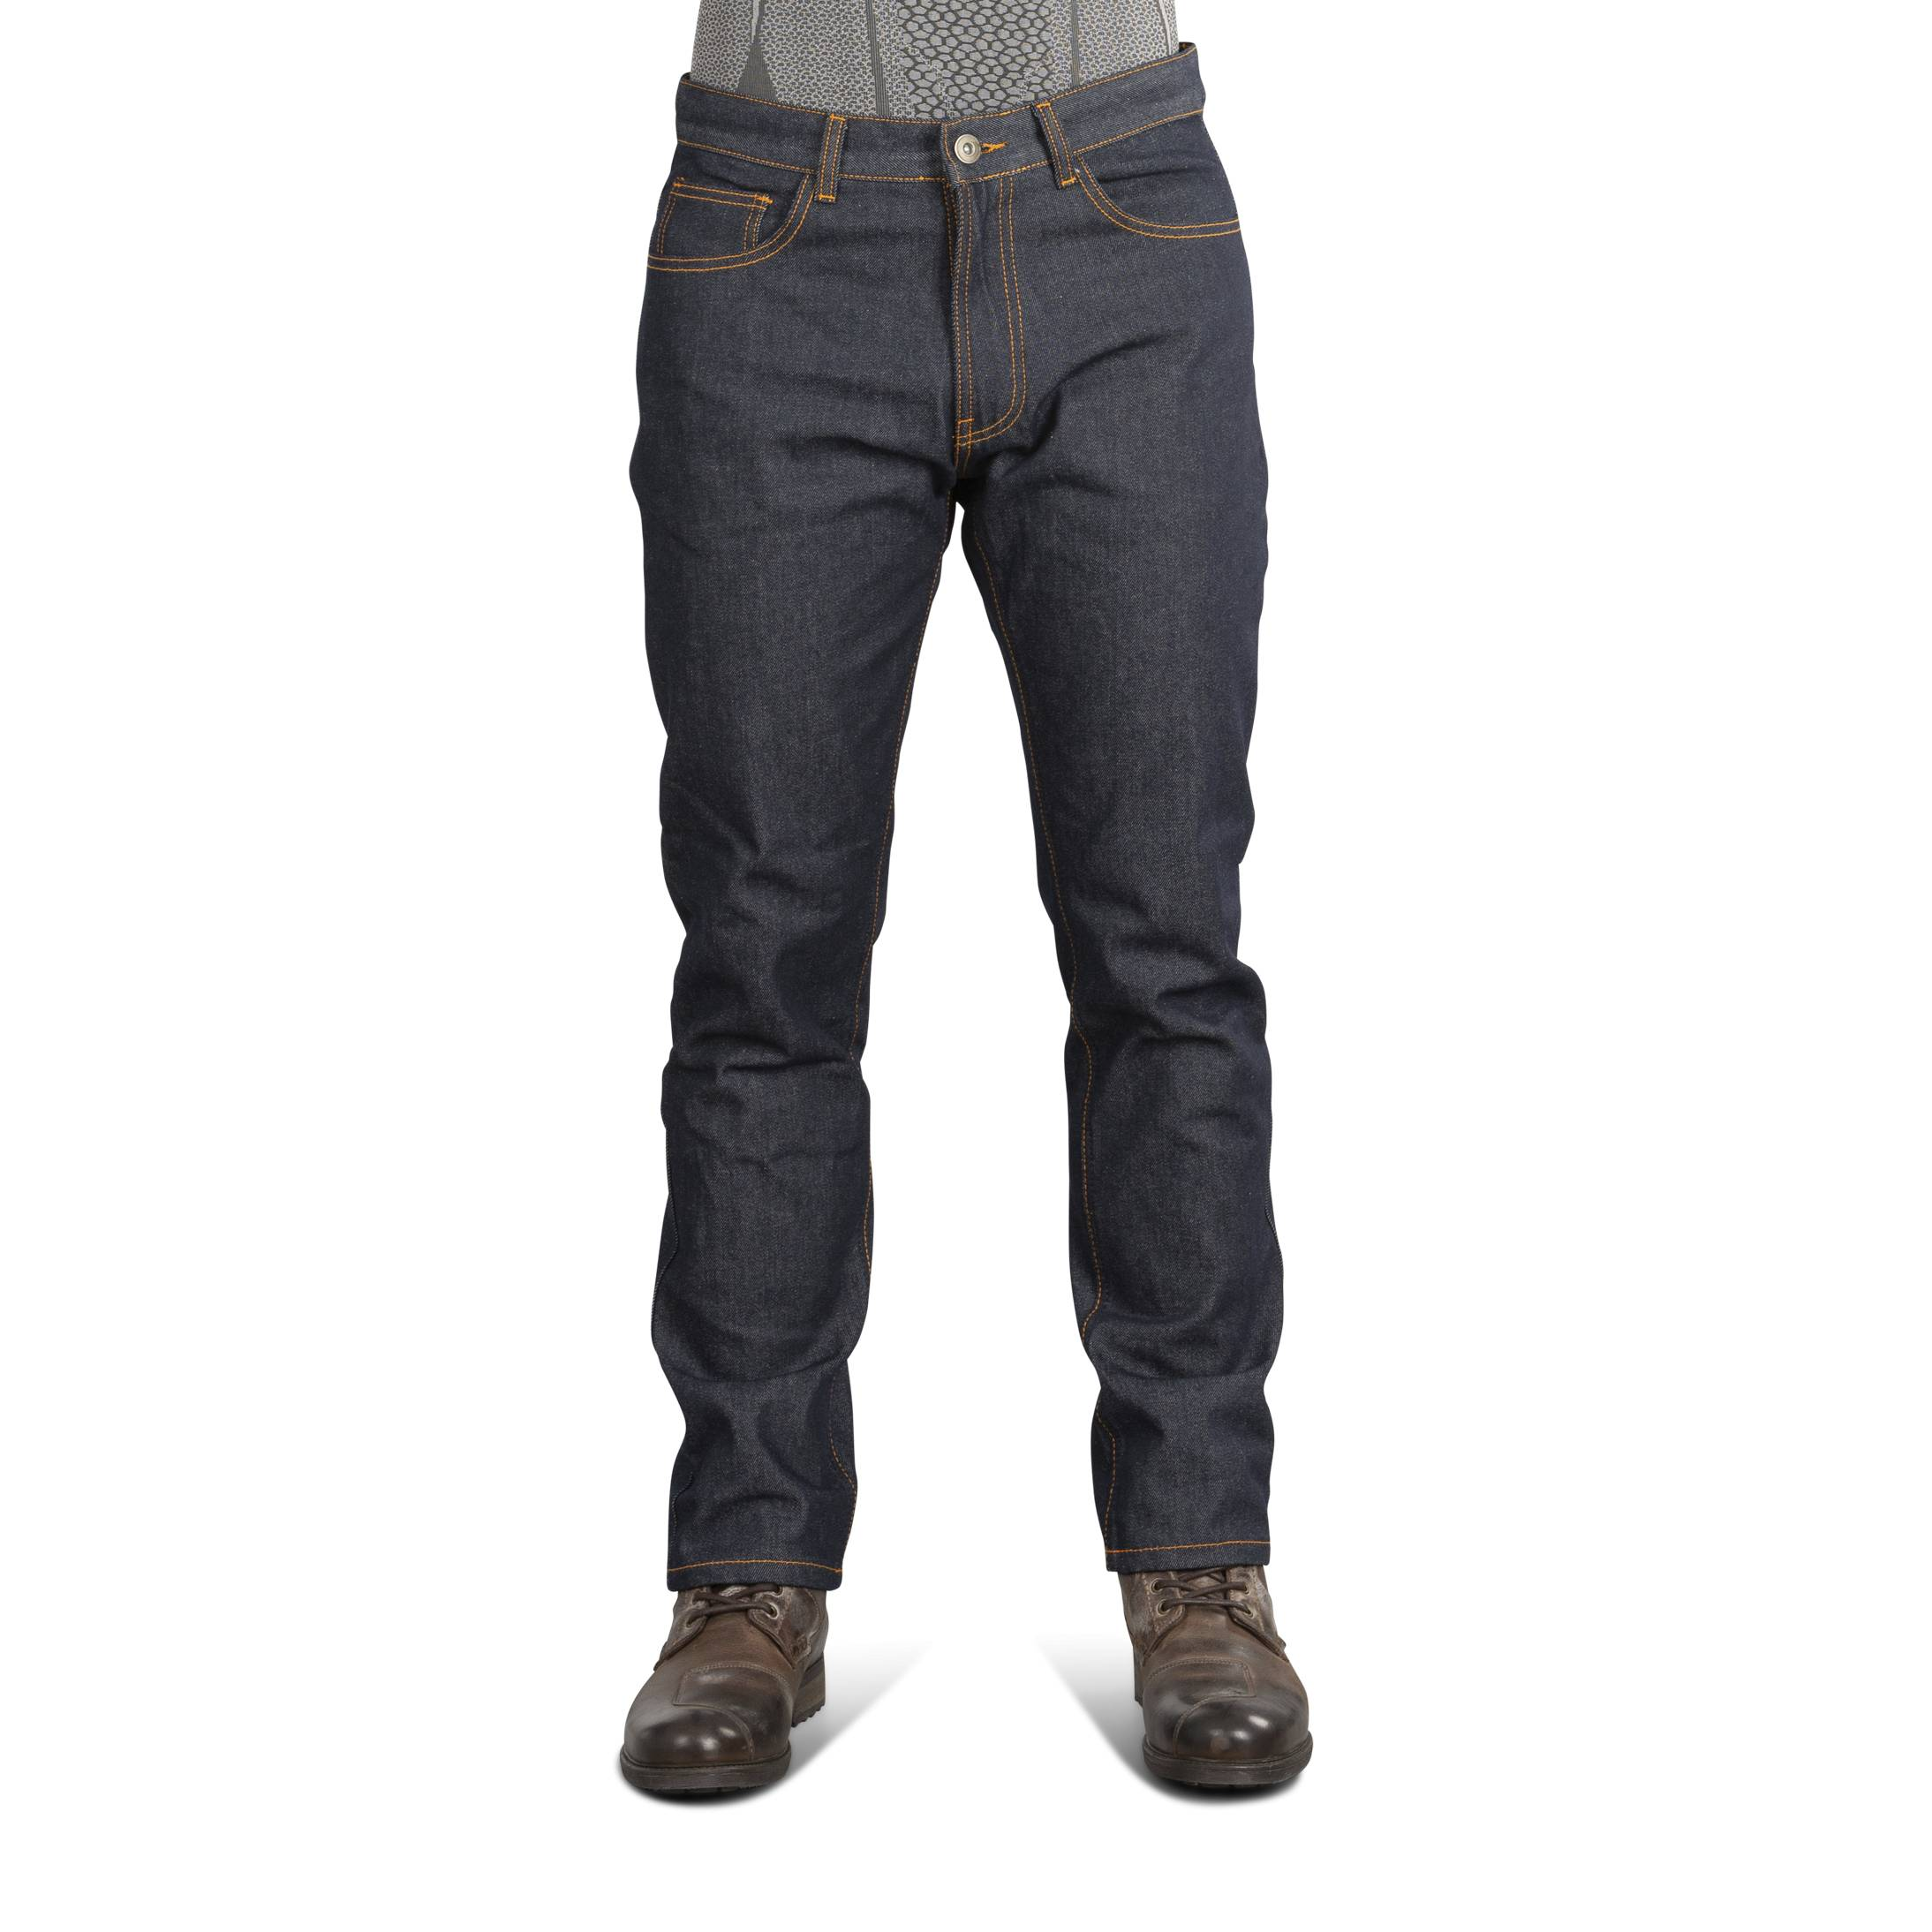 Course Jean Moto Course Heavy Duty Anti-Fit Raw Denim W40 L36